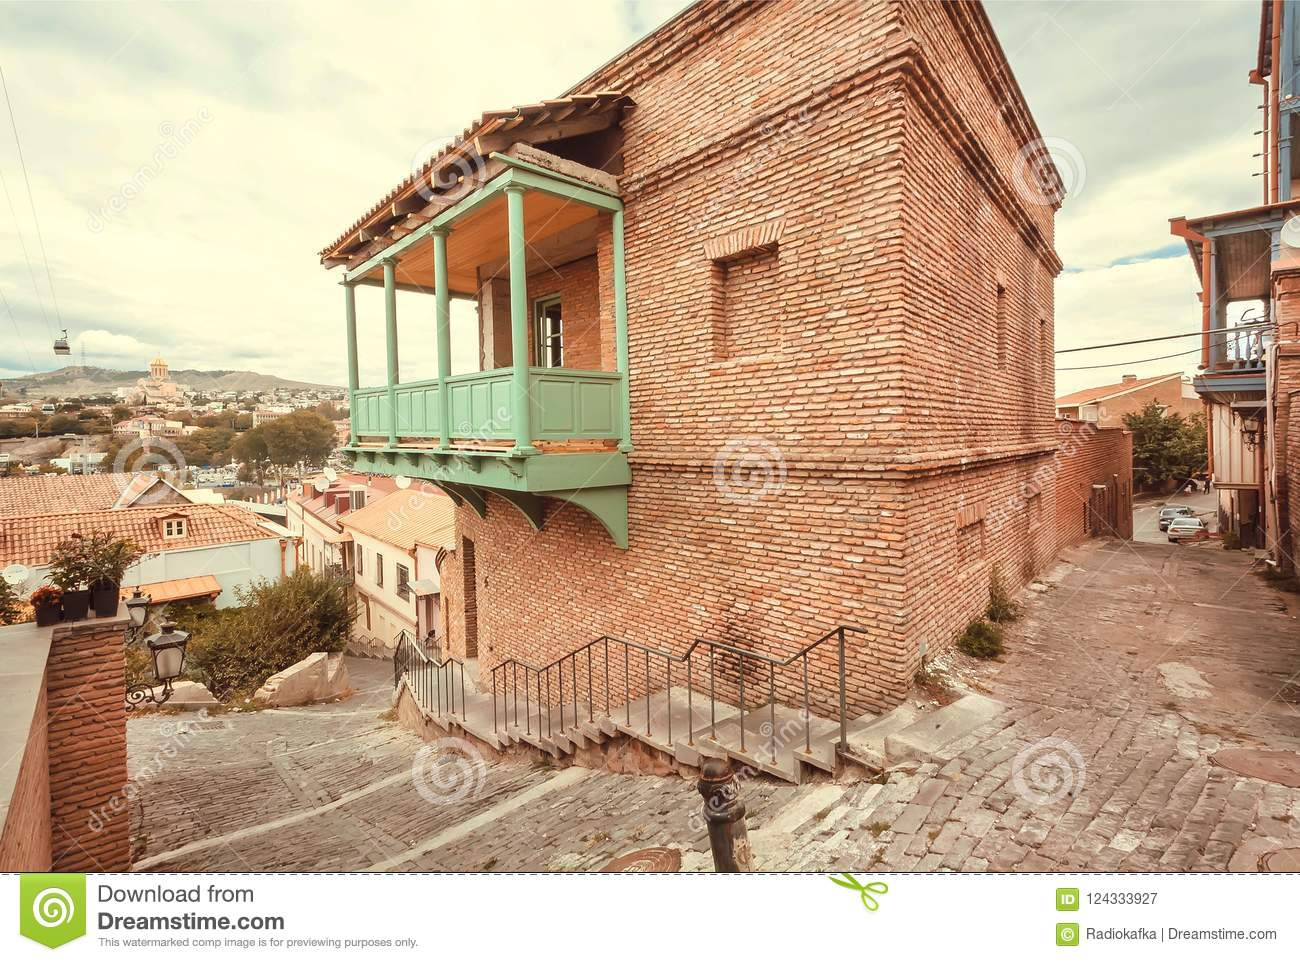 Brick house with balcony, facade in traditional style built in historical area of Tbilisi, Georgia country